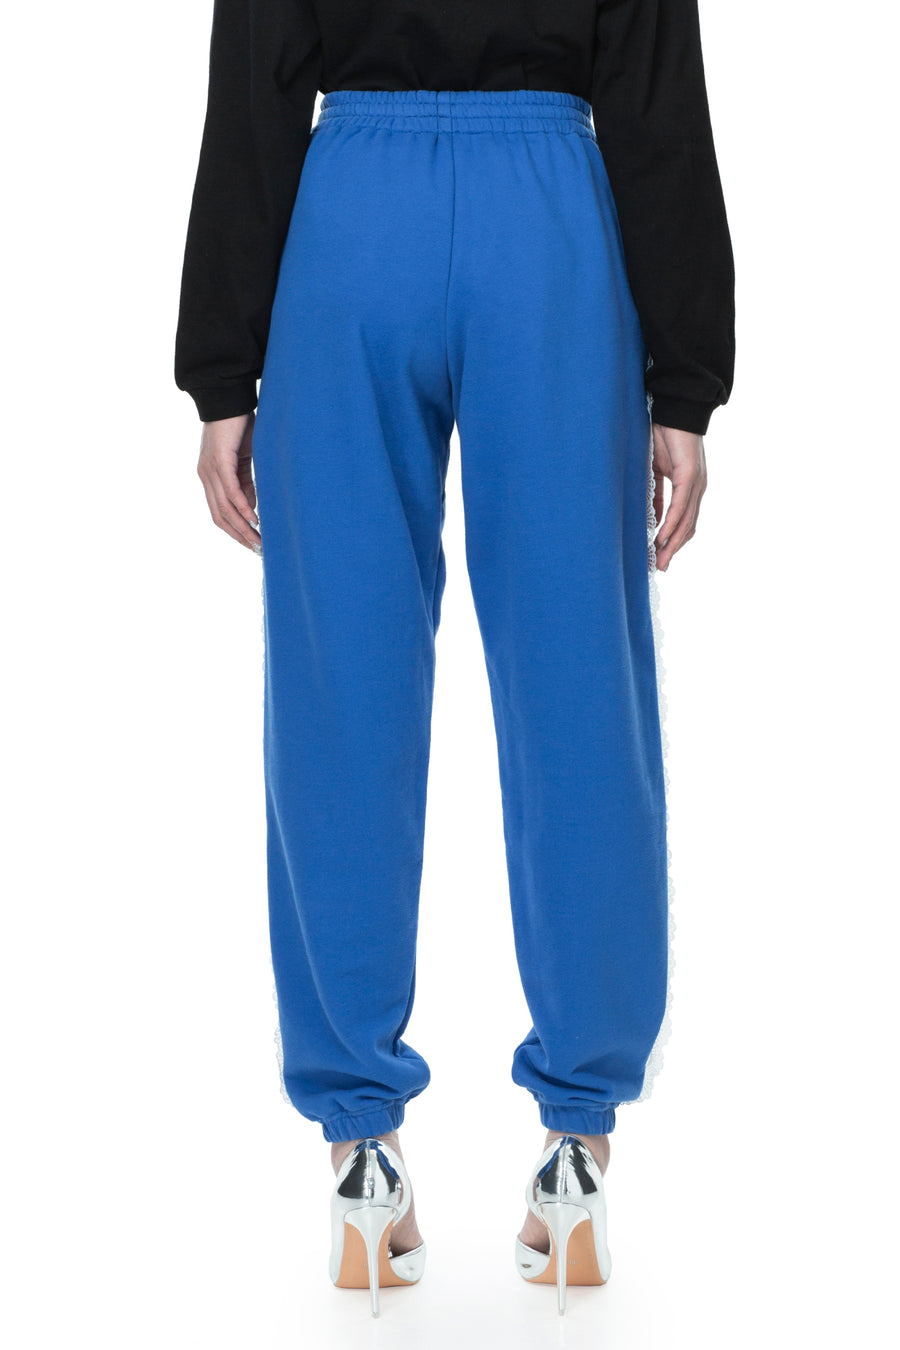 Blue Heart Patch Lace Trim Sweatpants